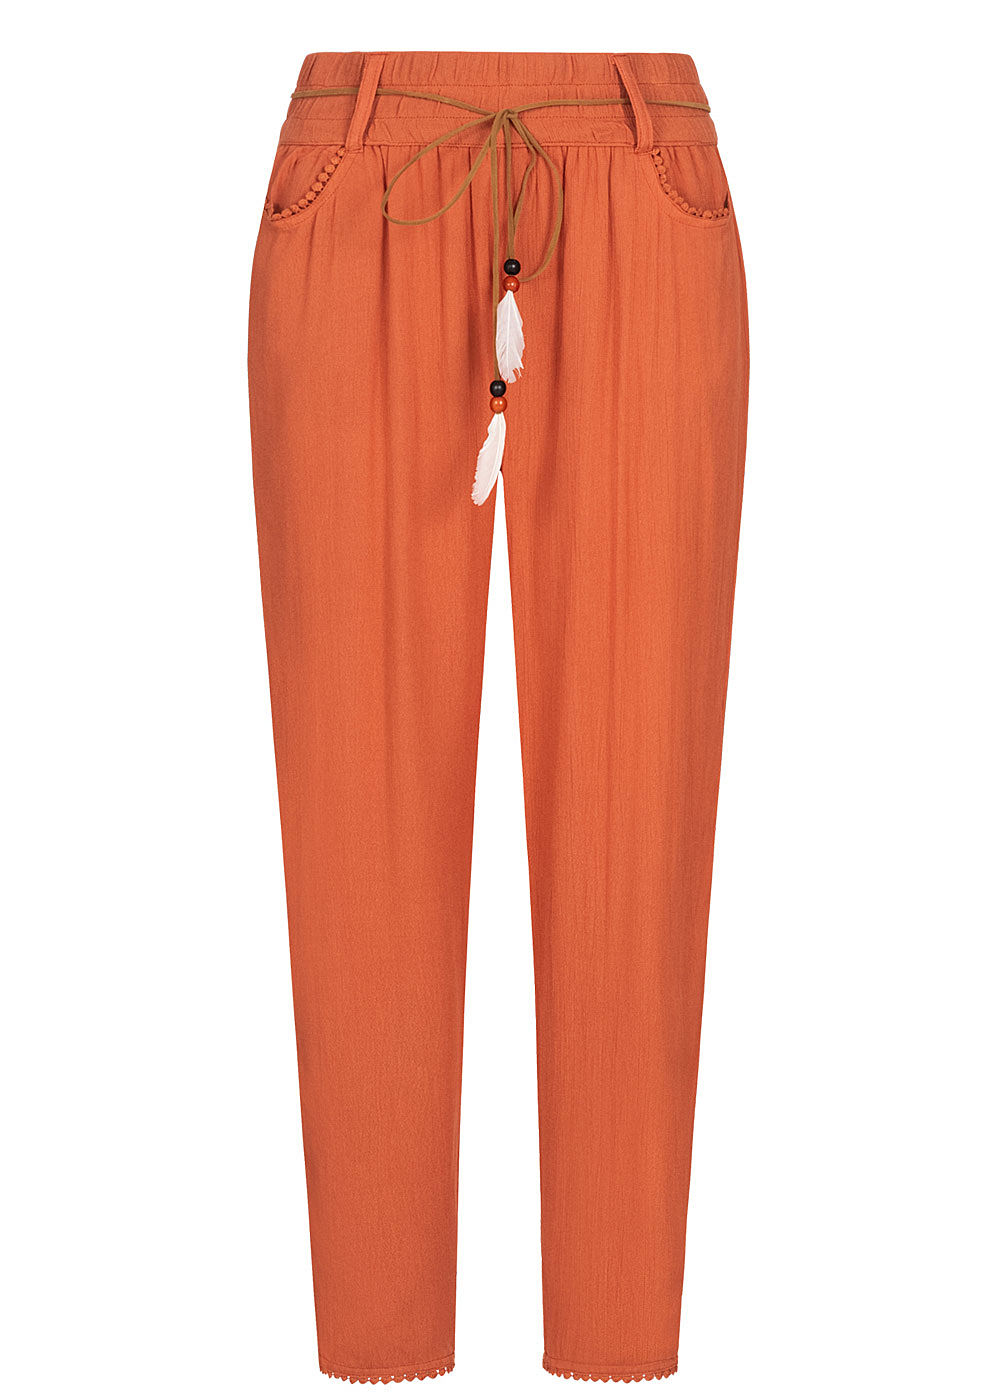 Eight2Nine Damen Sommer Hose 2-Pockets inkl. Feder Gürtel autumn orange - Art.-Nr.: 20052414